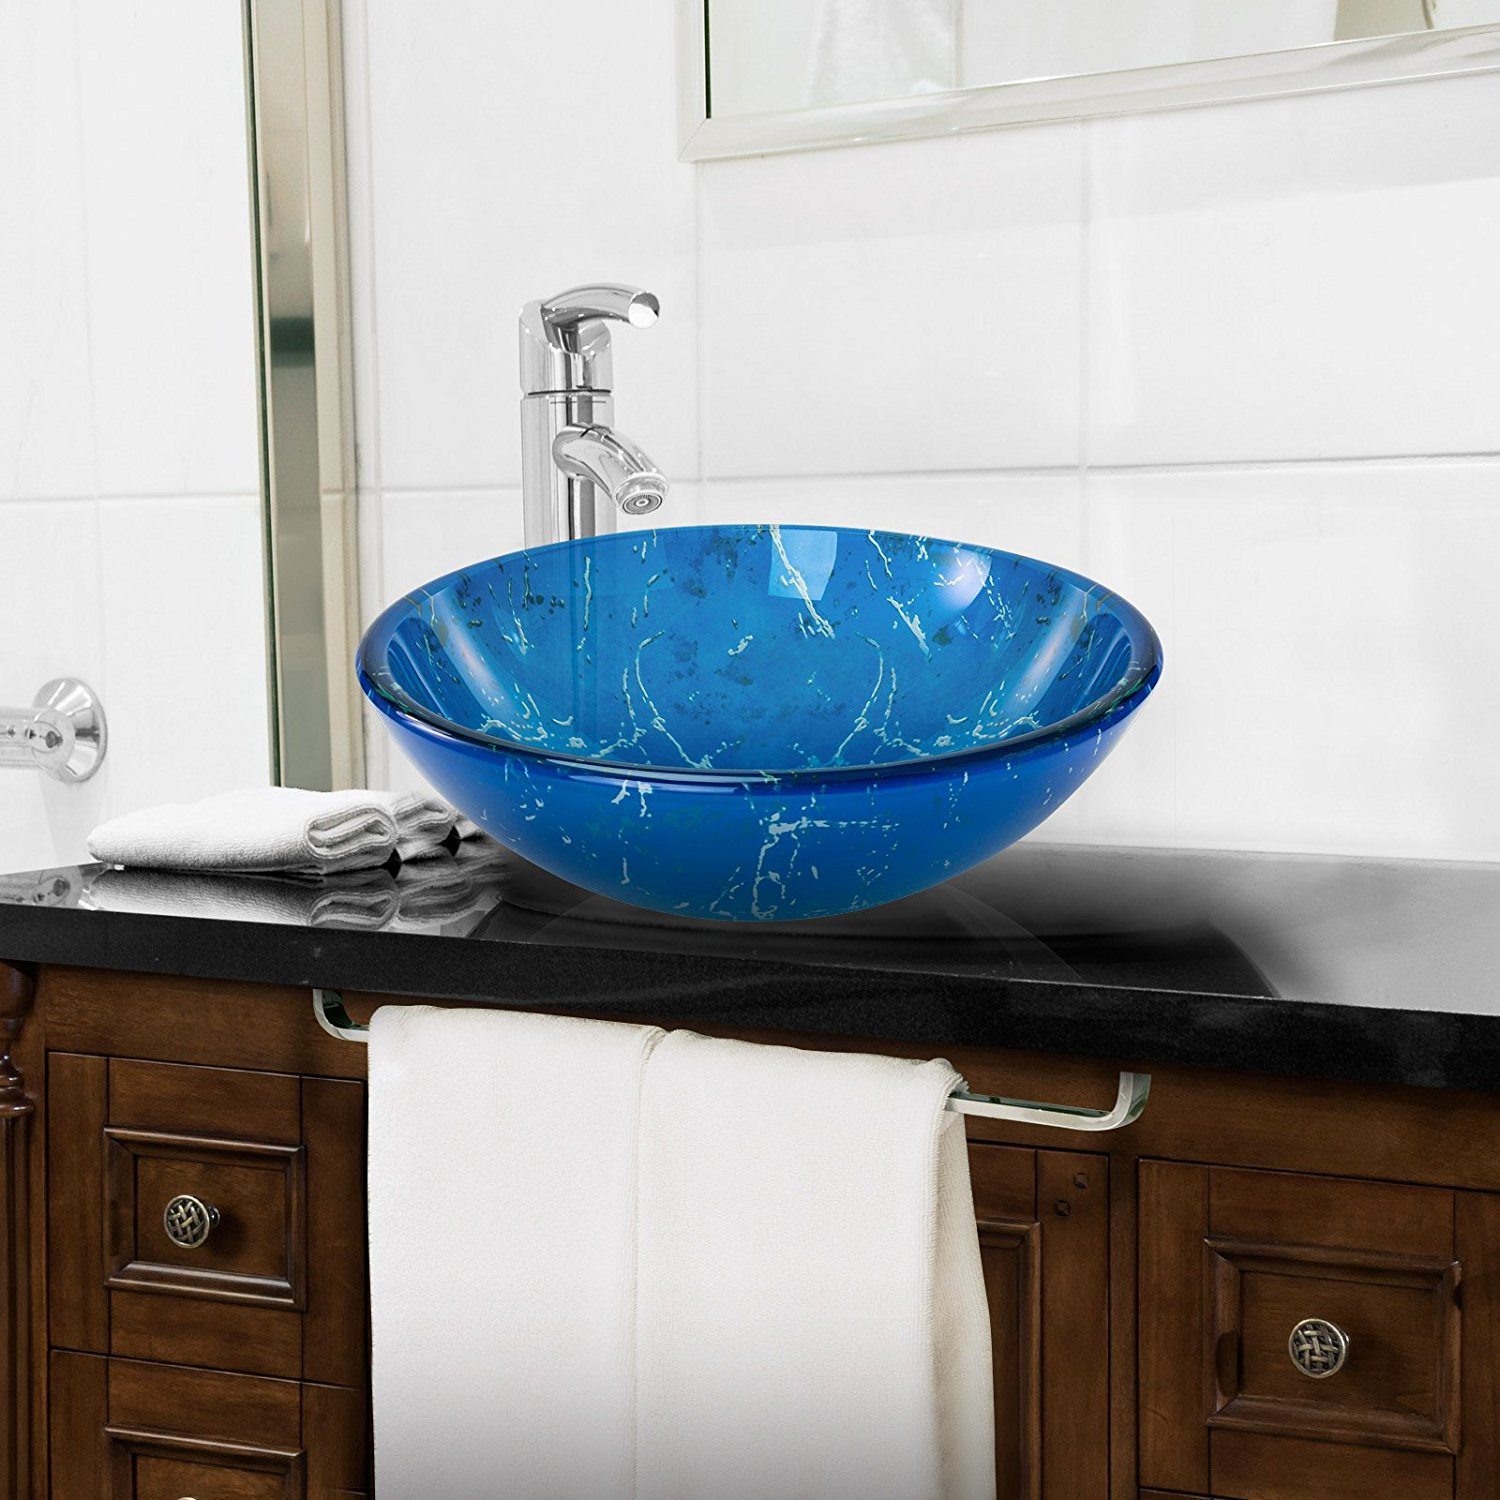 vanity diverse placed darker sink on stylish a bathroom vessel wooden sinks and